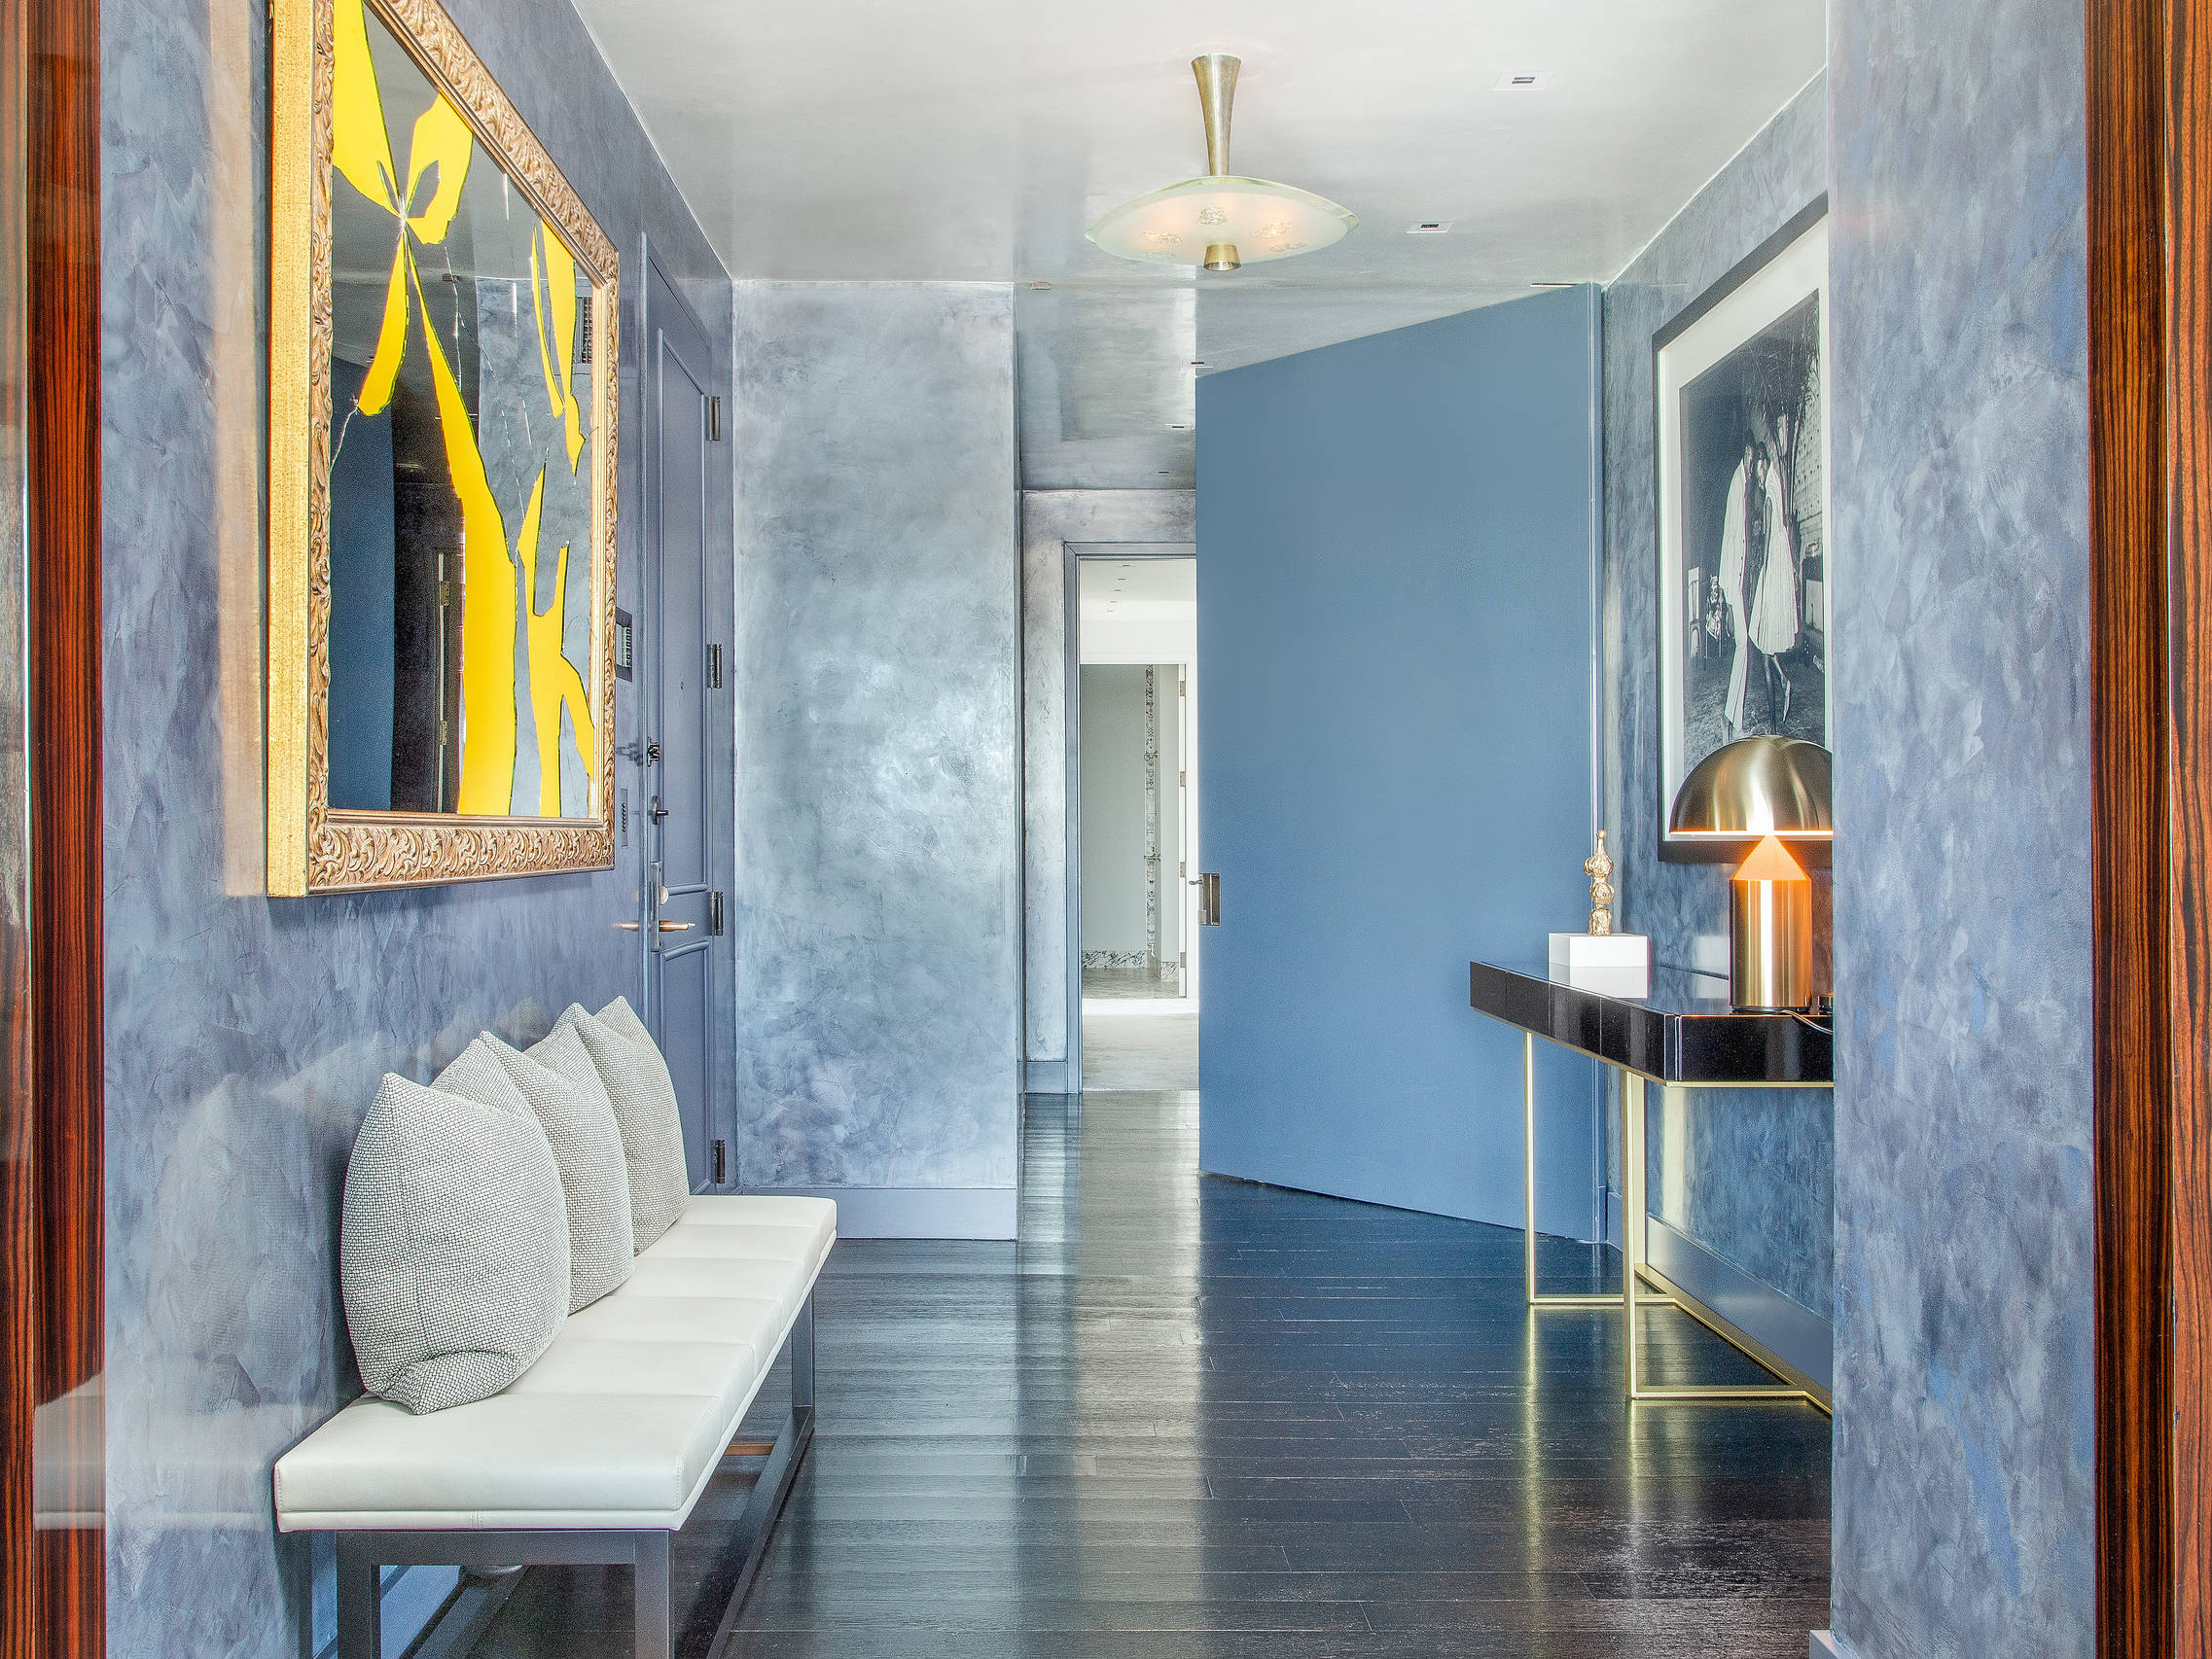 UPPER WEST SIDE APARTMENT, NY -